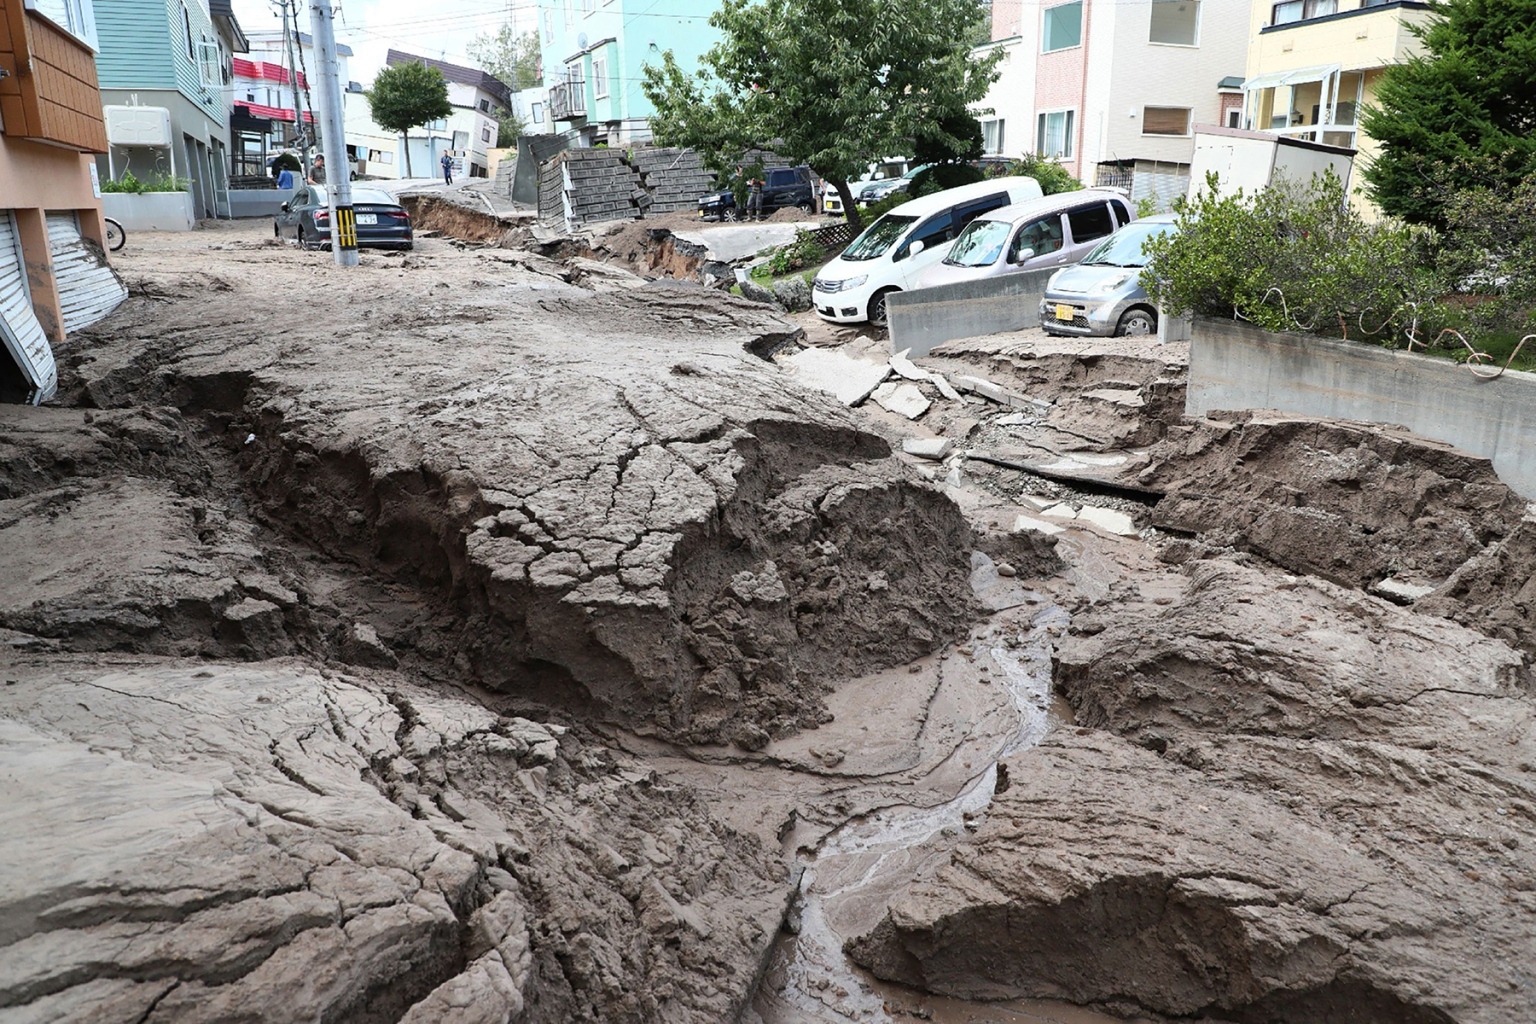 Cars tilt toward an earthquake-damaged road in Sapporo, Hokkaido prefecture, Japan on Sept. 6. A powerful 6.7-magnitude quake rocked the northern Japanese island, triggering landslides, collapsing buildings, and killing at least 18 people with dozens of others missing. JIJI PRESS/AFP/Getty Images